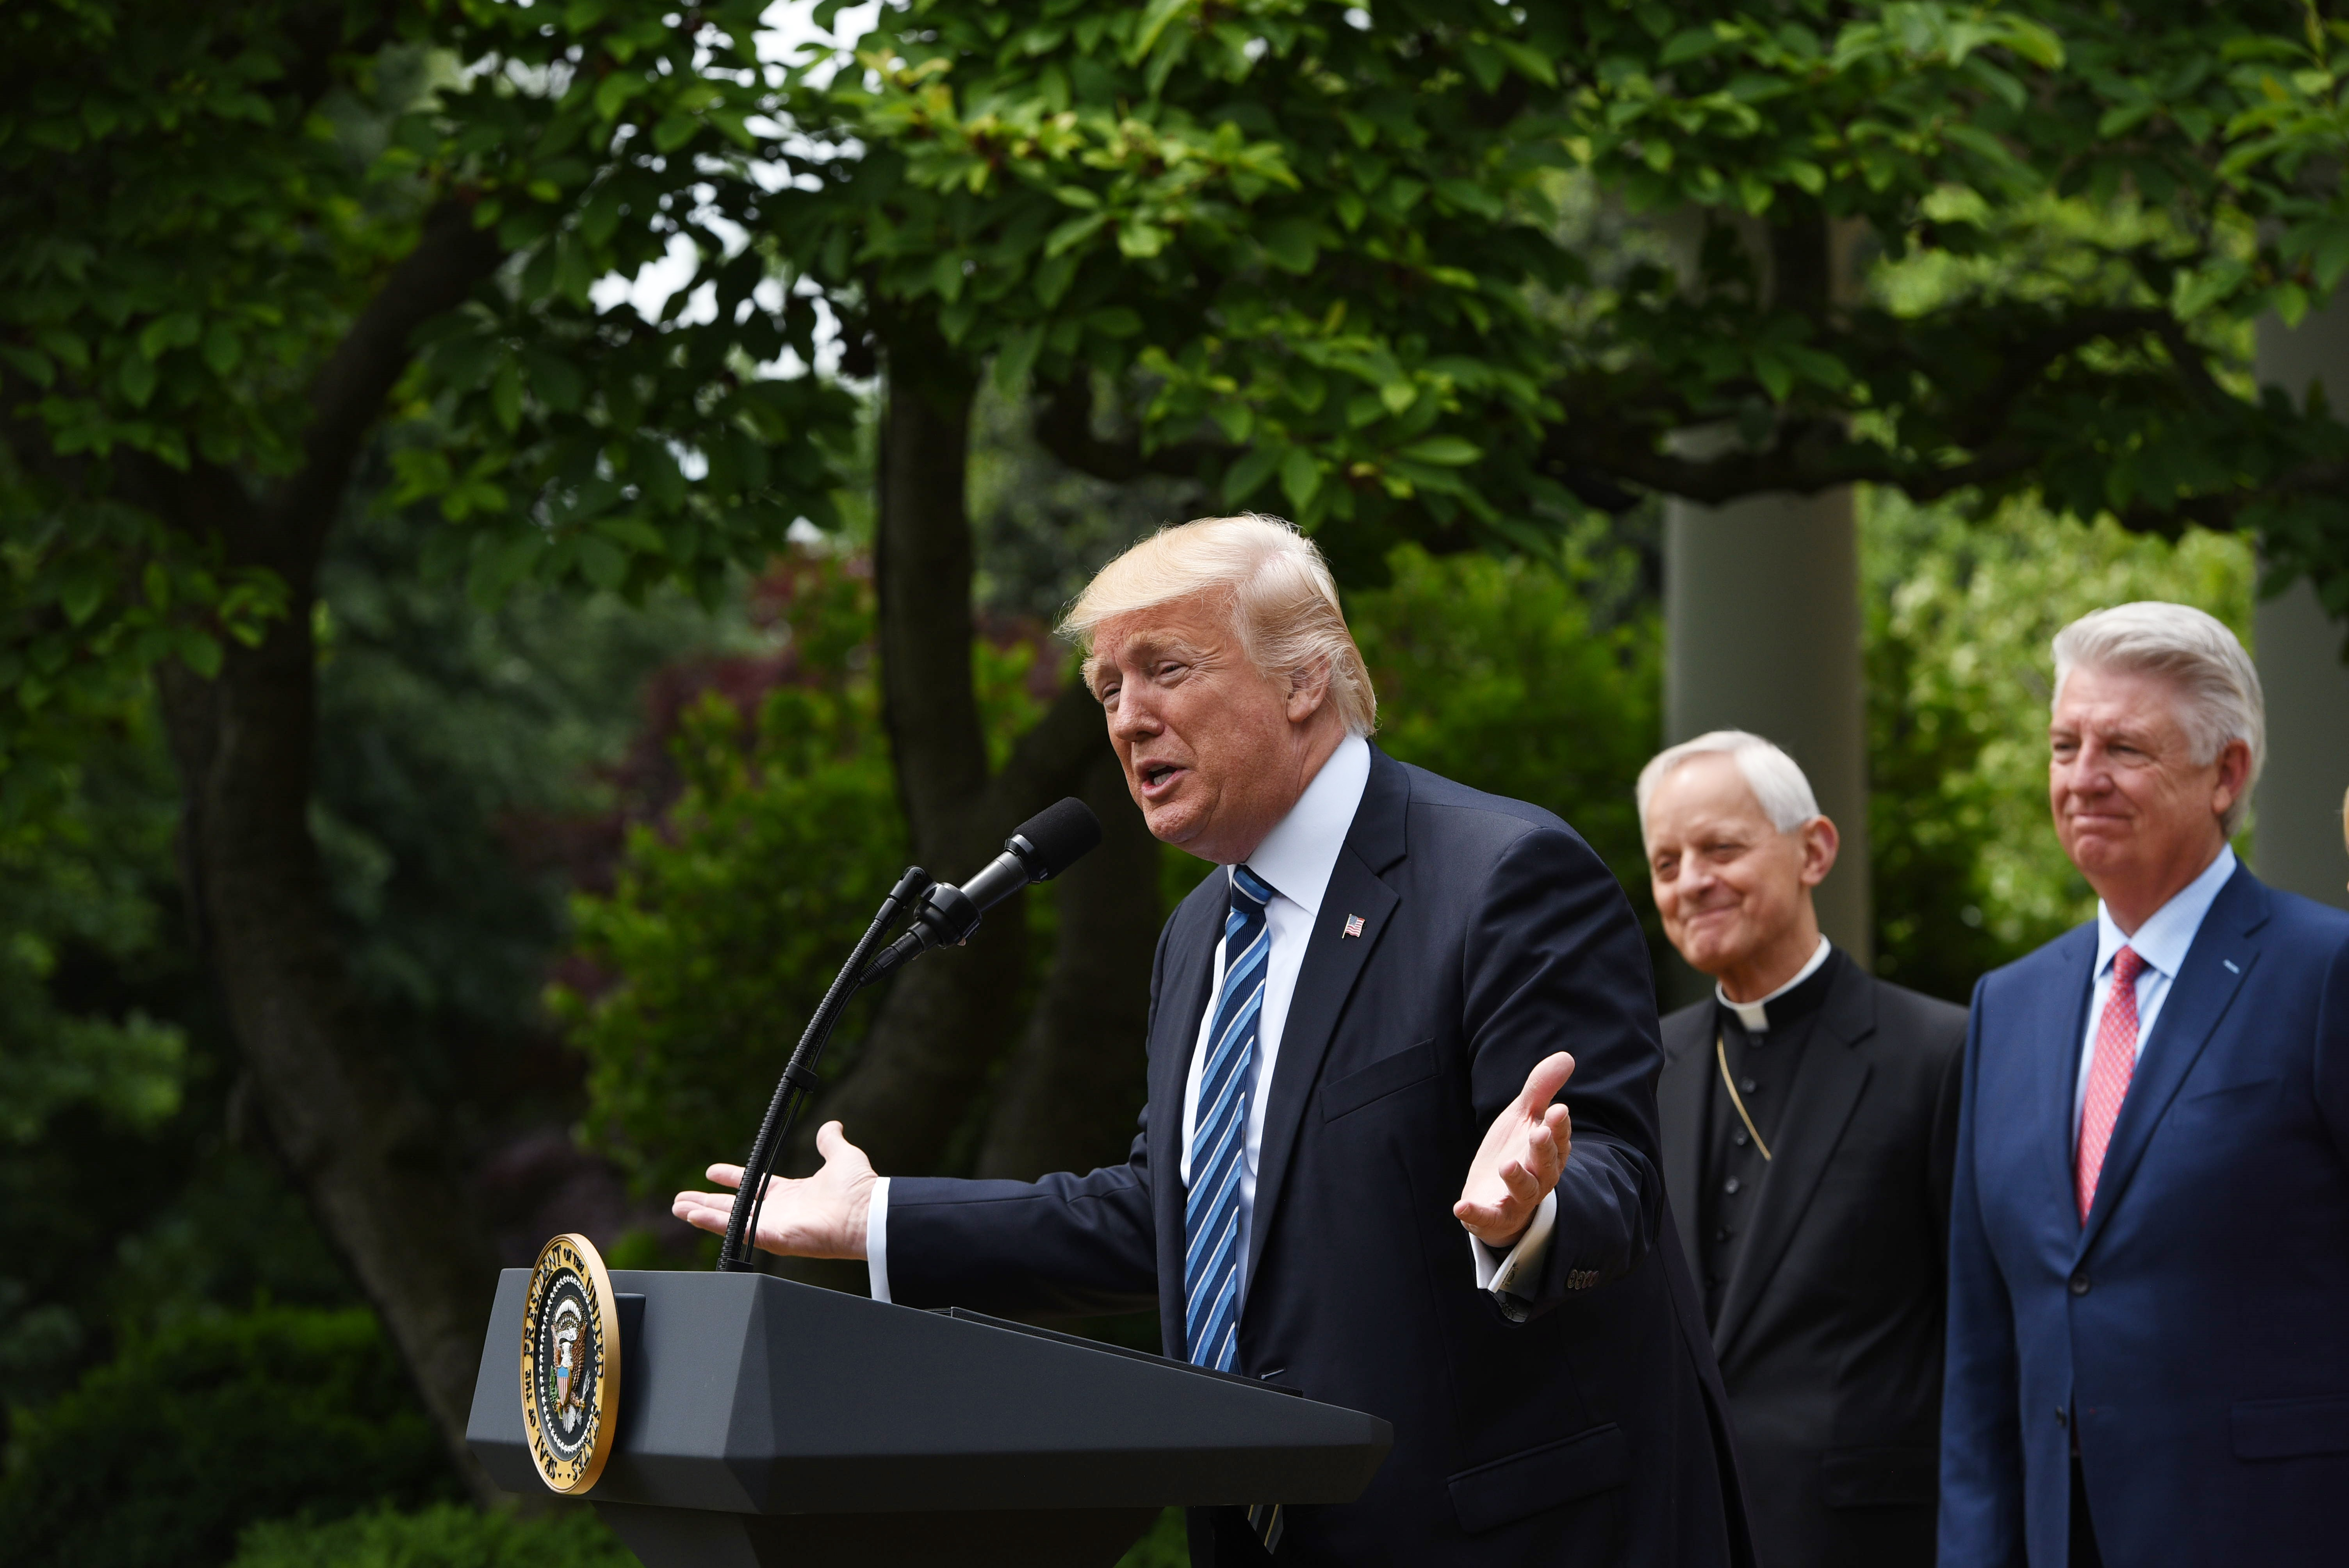 US President Donald Trump speaks before signing an Executive Order on Promoting Free Speech and Religious Liberty in the Rose Garden of the White House on May 4, 2017 in Washington, DC.                     Trump issued an executive order on Thursday making it easier for churches and religious groups to take part in politics without risk of losing their tax-exempt status, a senior White House official said. / AFP PHOTO / Mandel Ngan        (Photo credit should read MANDEL NGAN/AFP/Getty Images)